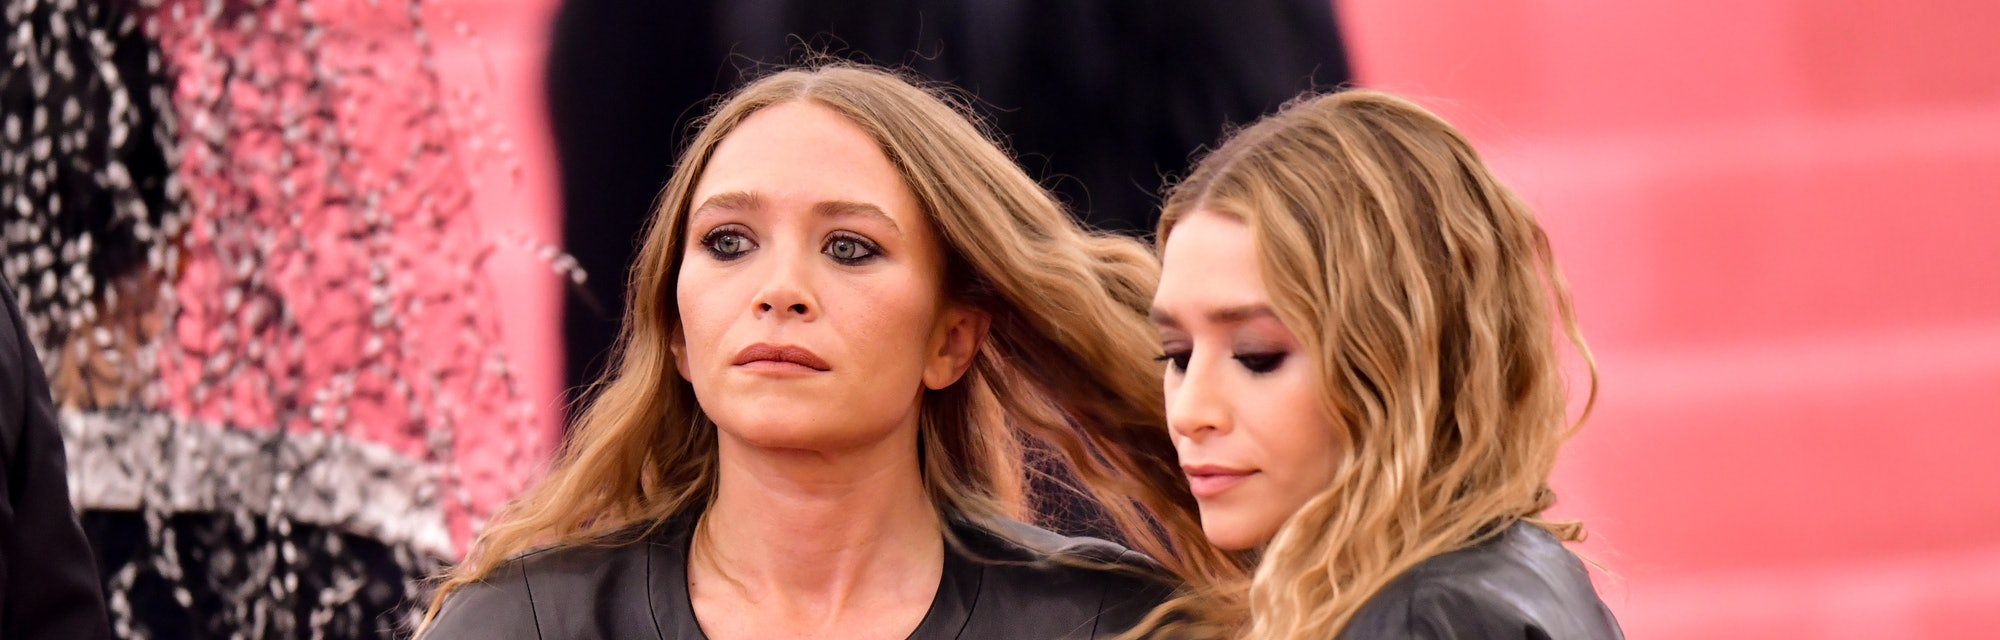 Mary Kate Ashley Olsen S Best Hairstyles Ever From 90s Updos To Their Famous Beachy Waves